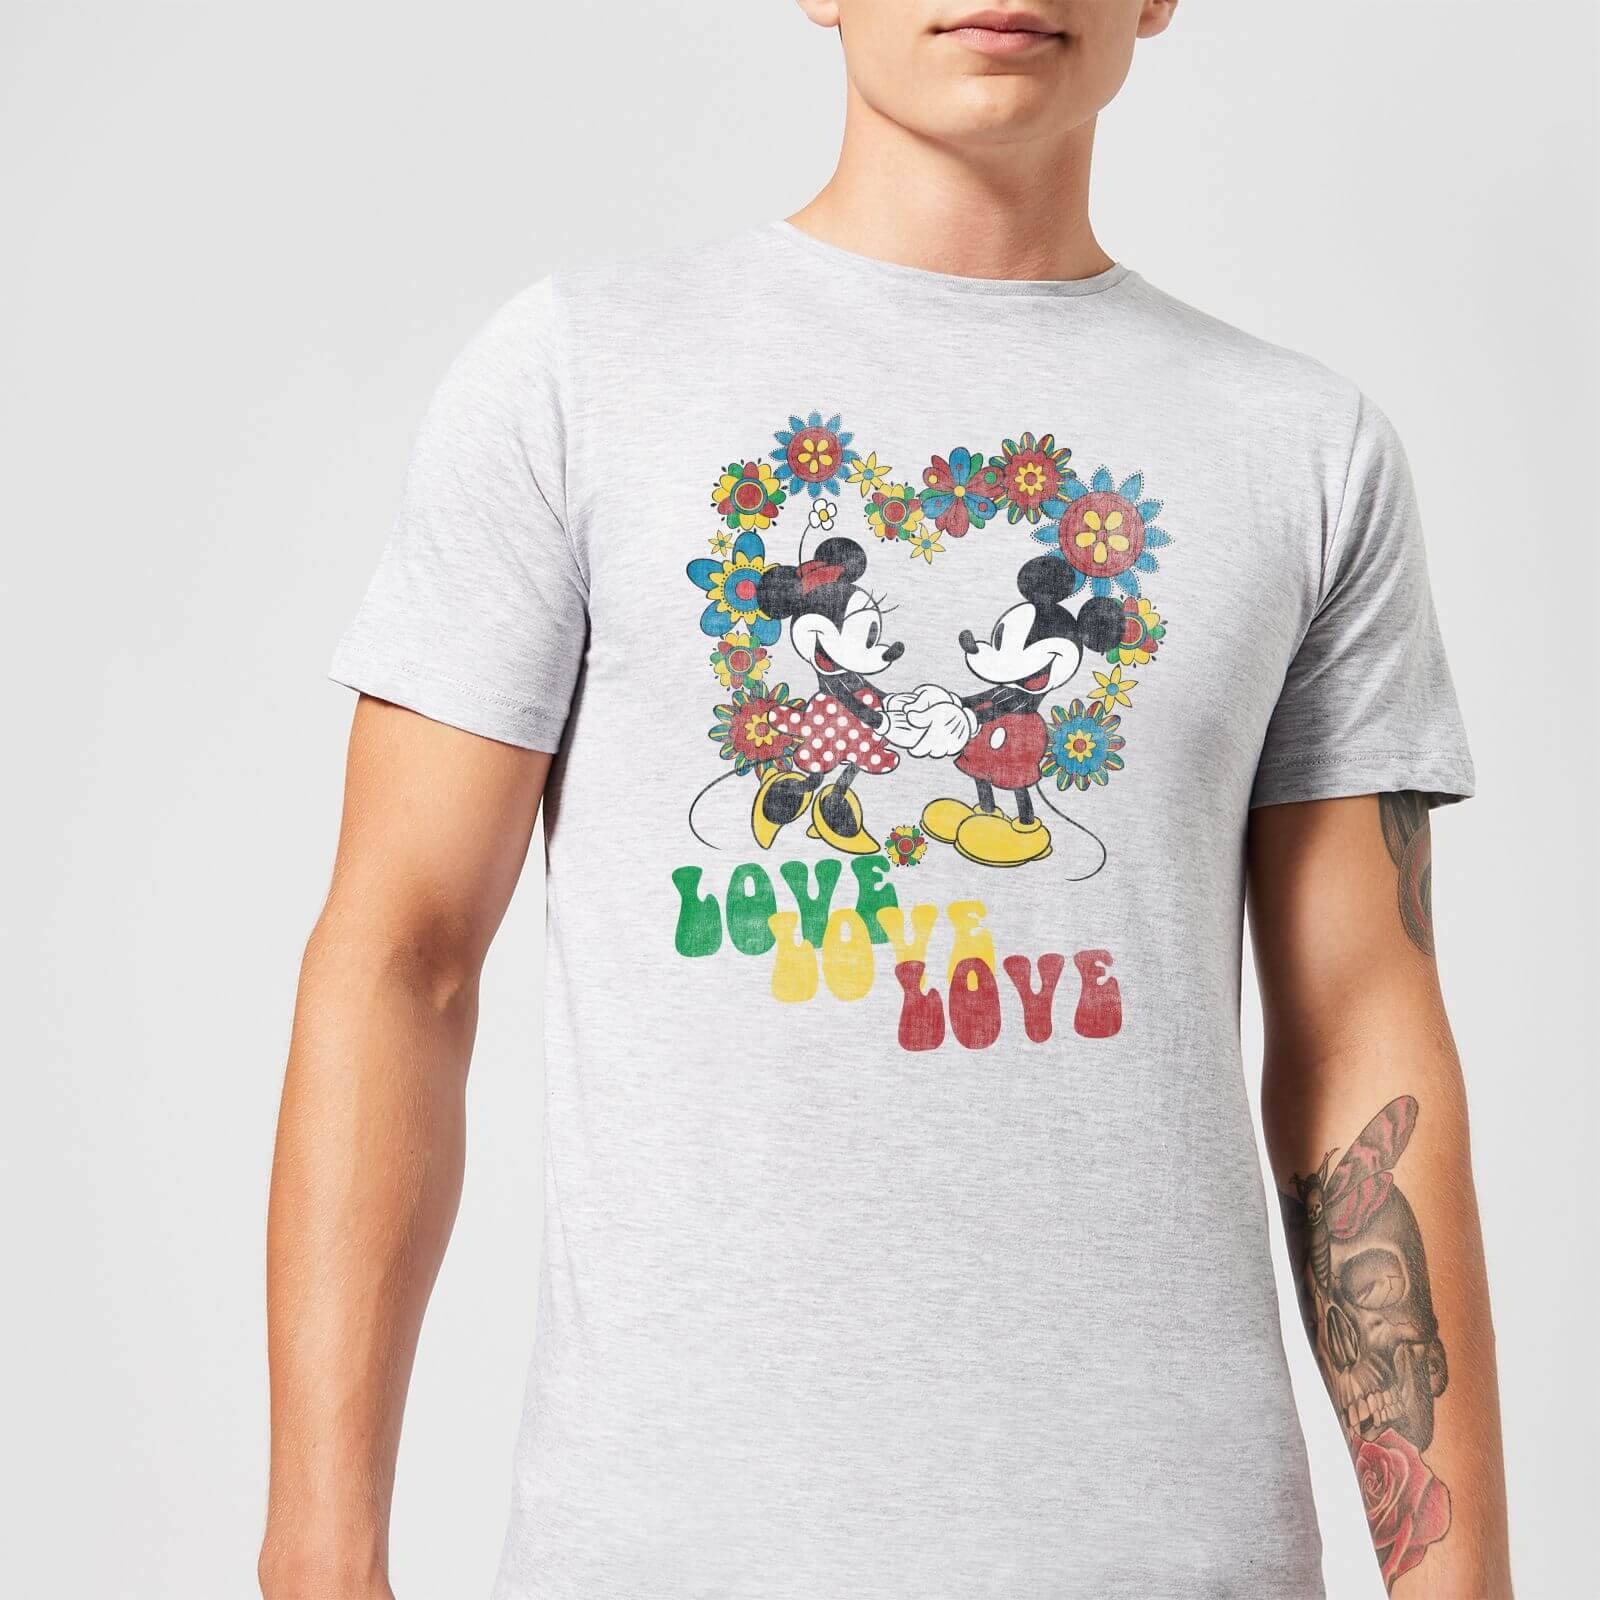 Disney Mickey Mouse Hippie Love T-Shirt - Grey - L - Black